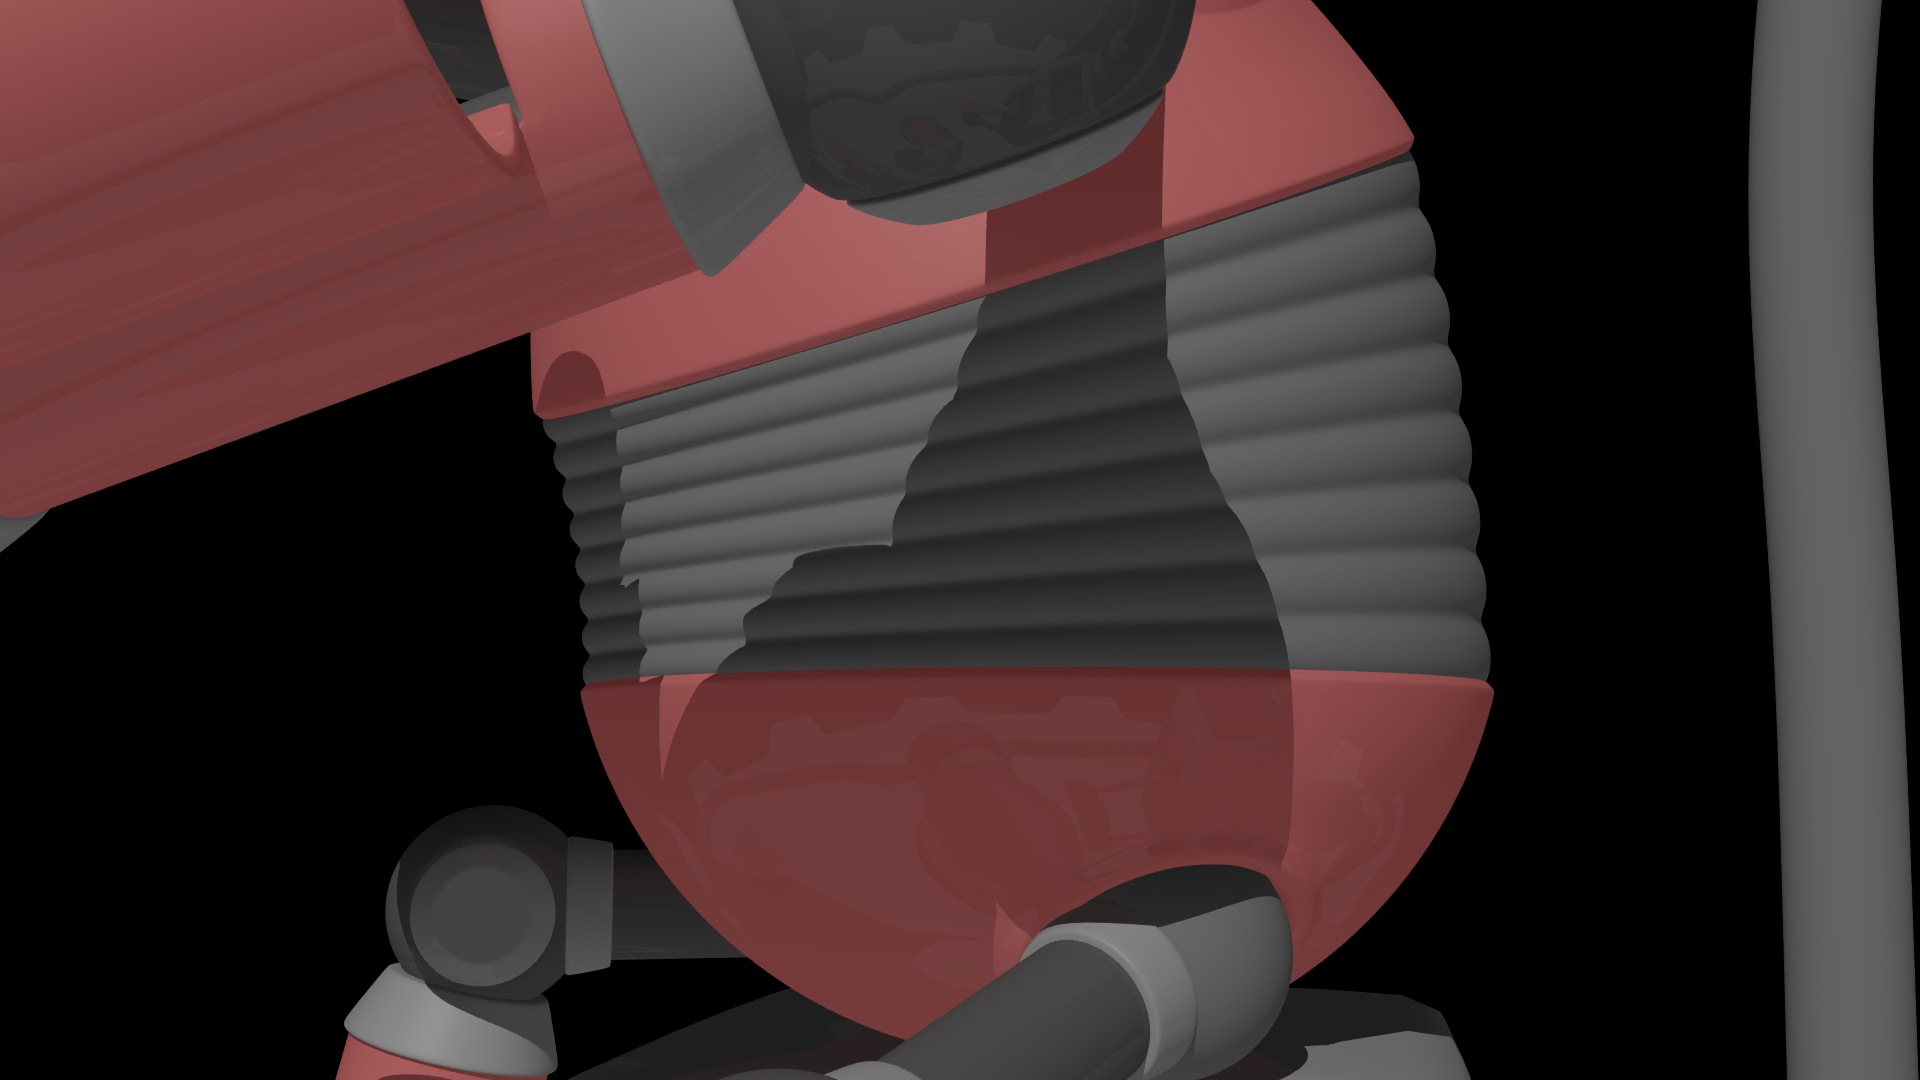 Added a hose like body for better movement when bending from the hips